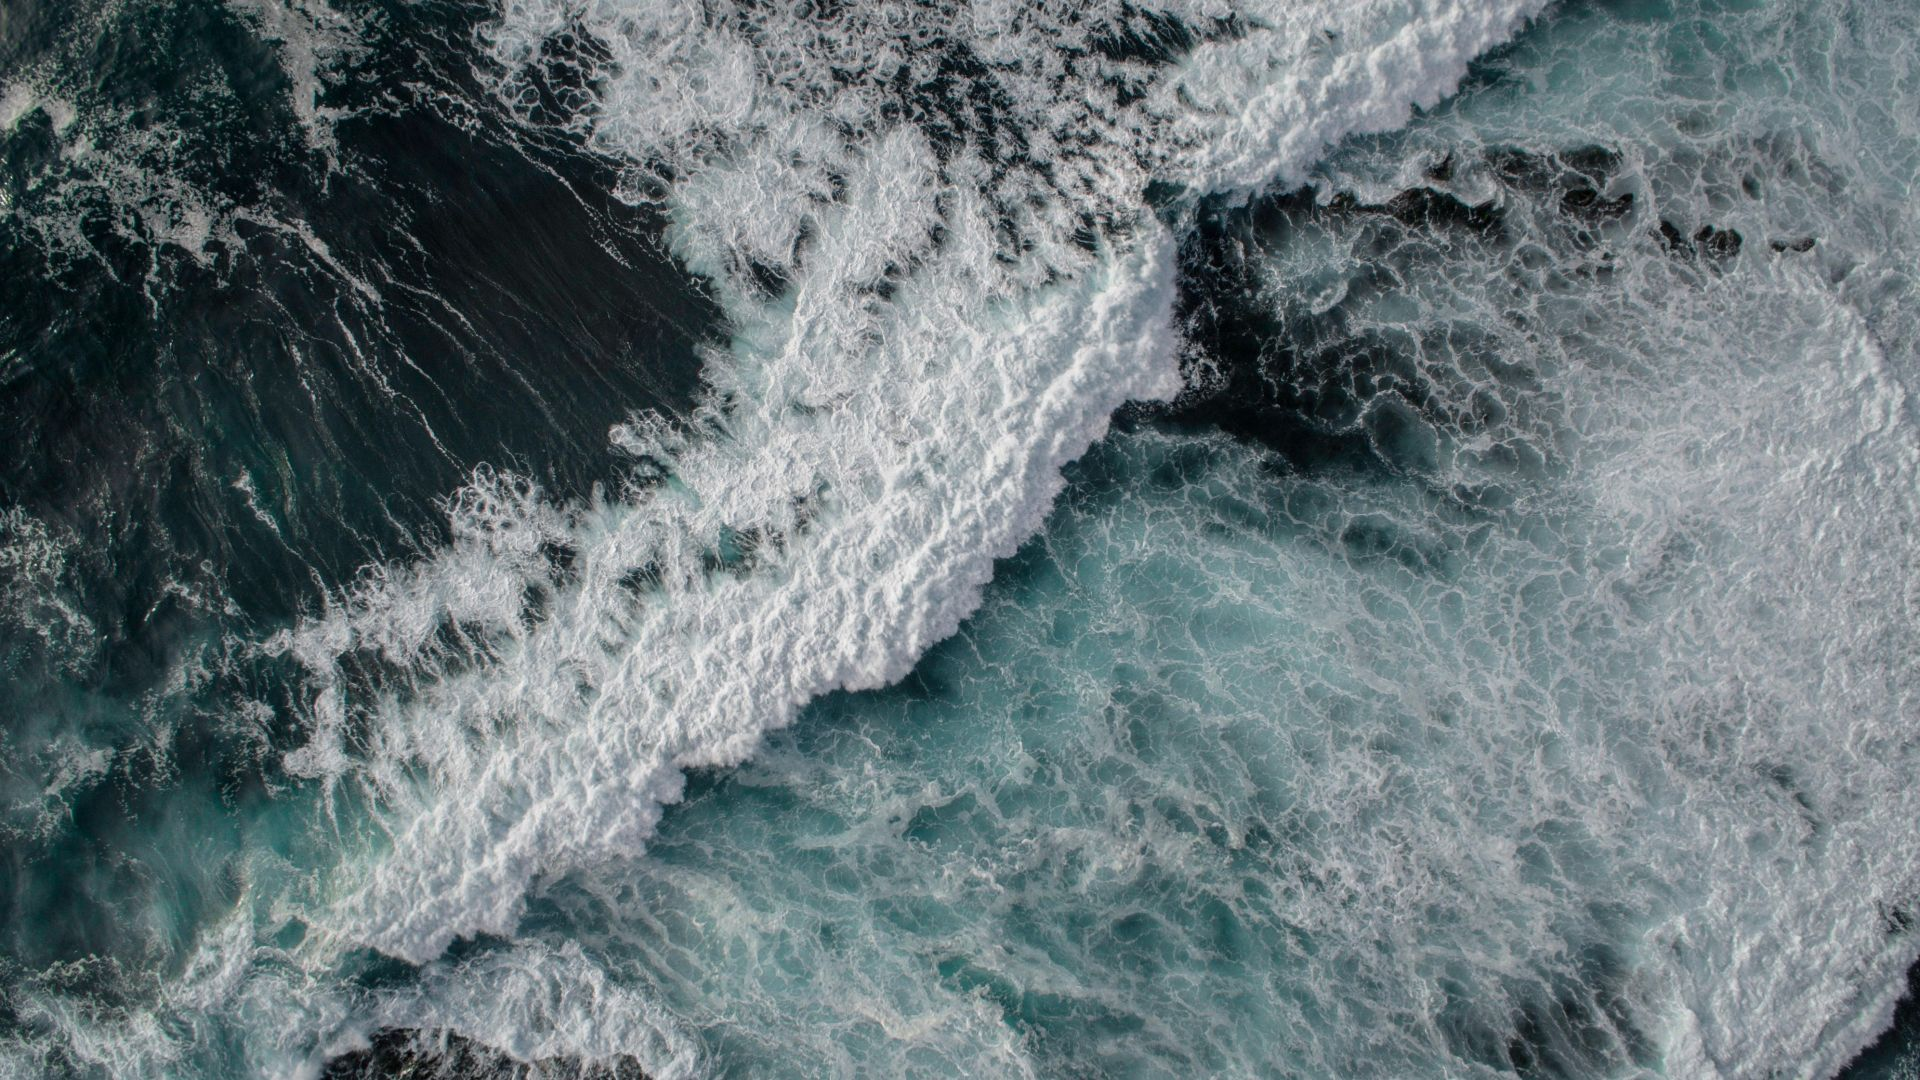 Sea, ocean, waves, 4k, 5k (horizontal)